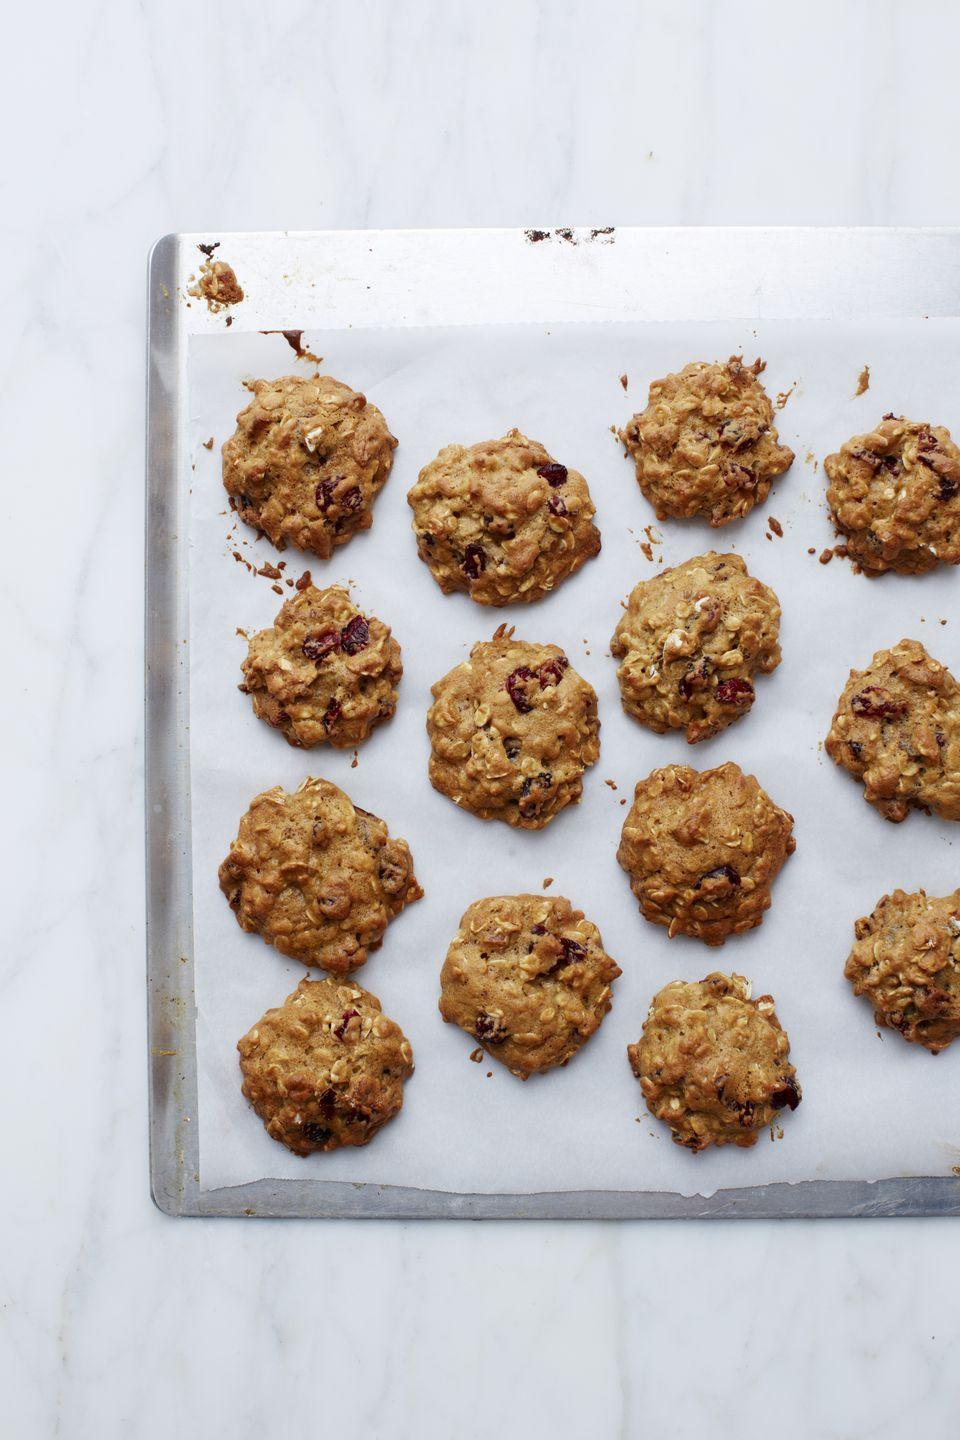 """<p>These taste like a cross between oatmeal cookies and banana bread. Yep, you'll want to make a double batch.</p><p><em><a href=""""https://www.goodhousekeeping.com/food-recipes/a15131/banana-oat-cookies-recipe-wdy0213/"""" rel=""""nofollow noopener"""" target=""""_blank"""" data-ylk=""""slk:Get the recipe for Banana Oat Cookies »"""" class=""""link rapid-noclick-resp"""">Get the recipe for Banana Oat Cookies »</a></em></p><p><strong>RELATED: </strong><a href=""""https://www.goodhousekeeping.com/food-recipes/g32631508/easy-banana-recipes/"""" rel=""""nofollow noopener"""" target=""""_blank"""" data-ylk=""""slk:23 Easy Banana Recipes for Sweet Baked Goods and Fruity Treats"""" class=""""link rapid-noclick-resp"""">23 Easy Banana Recipes for Sweet Baked Goods and Fruity Treats</a></p>"""